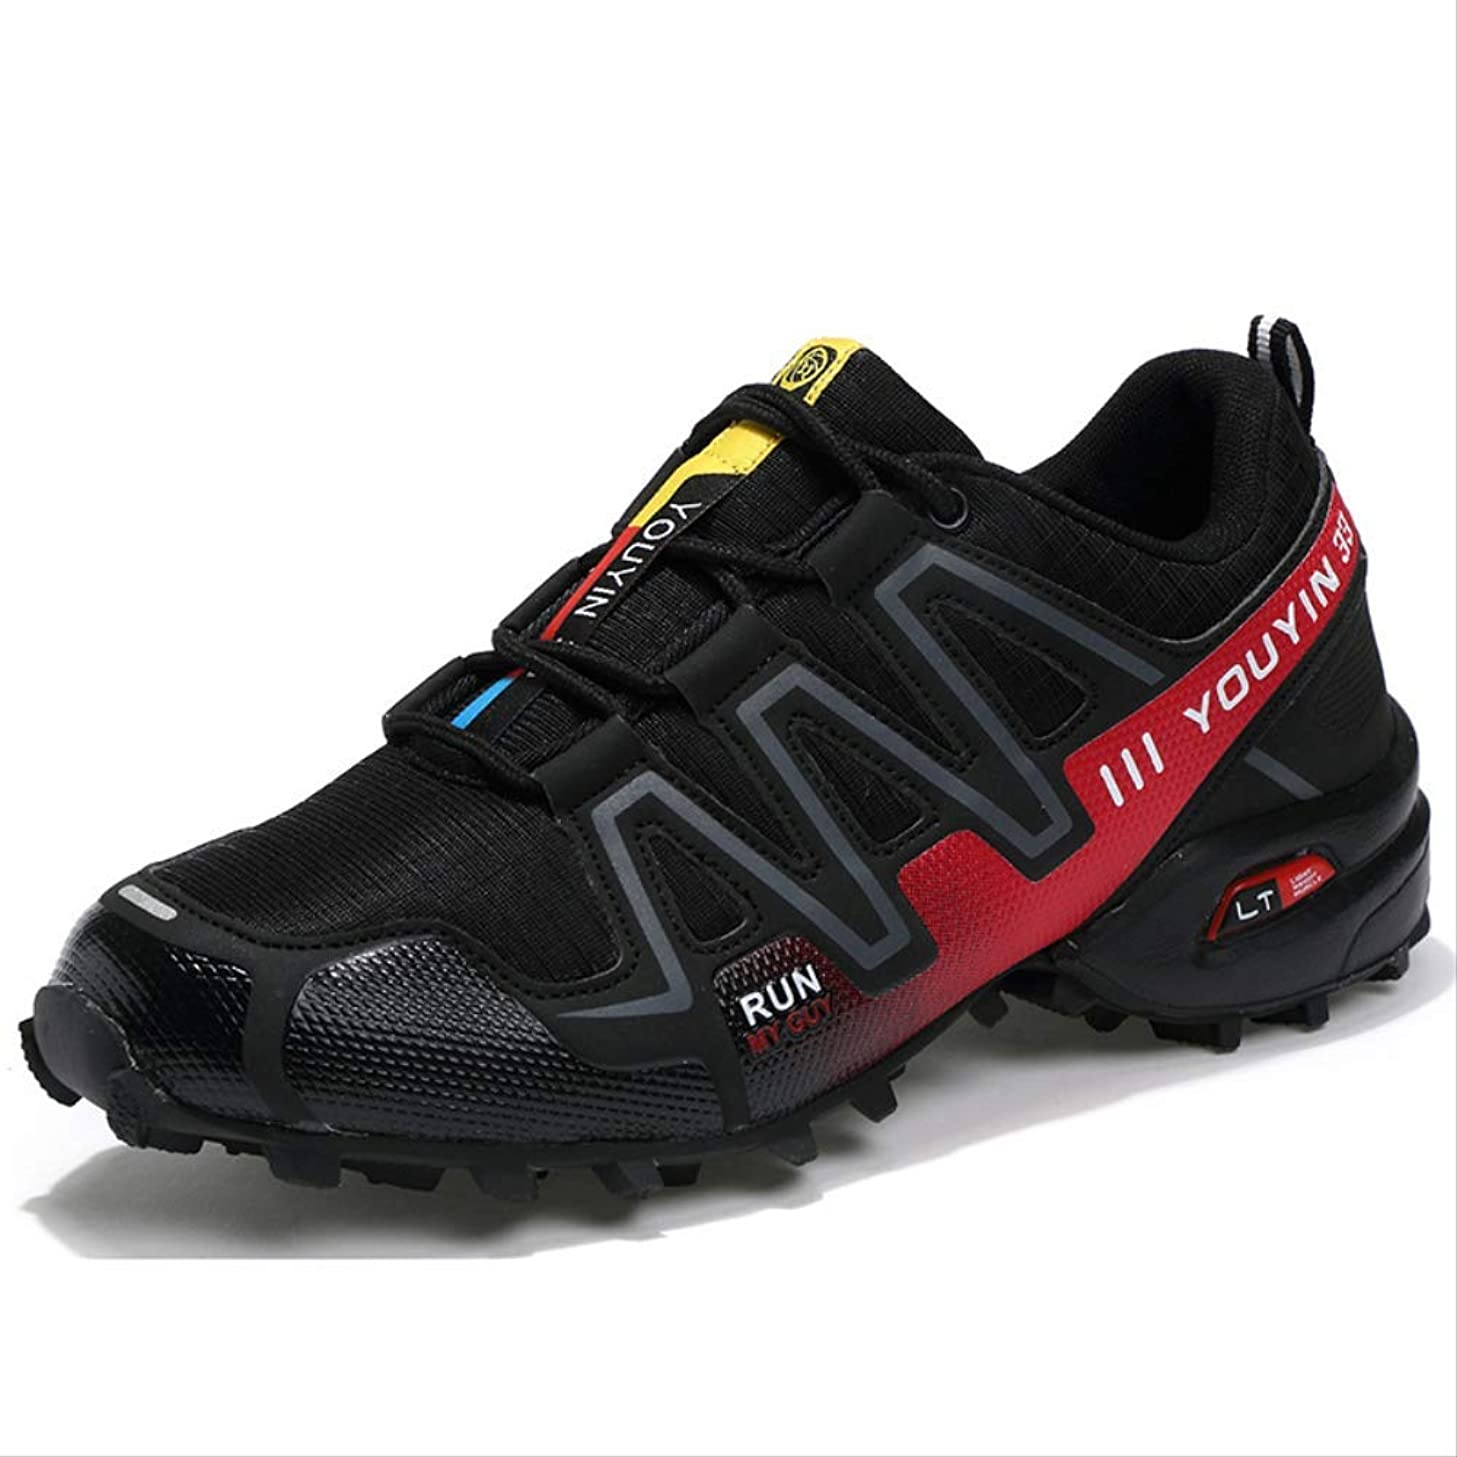 Outdoor Shoes Men's Shoes Outdoor Mountaineering Shoes Off-Road Hunting Boots Anti-Skid Wear-Resistant Trail Shoes Heavy Duty Sneakers